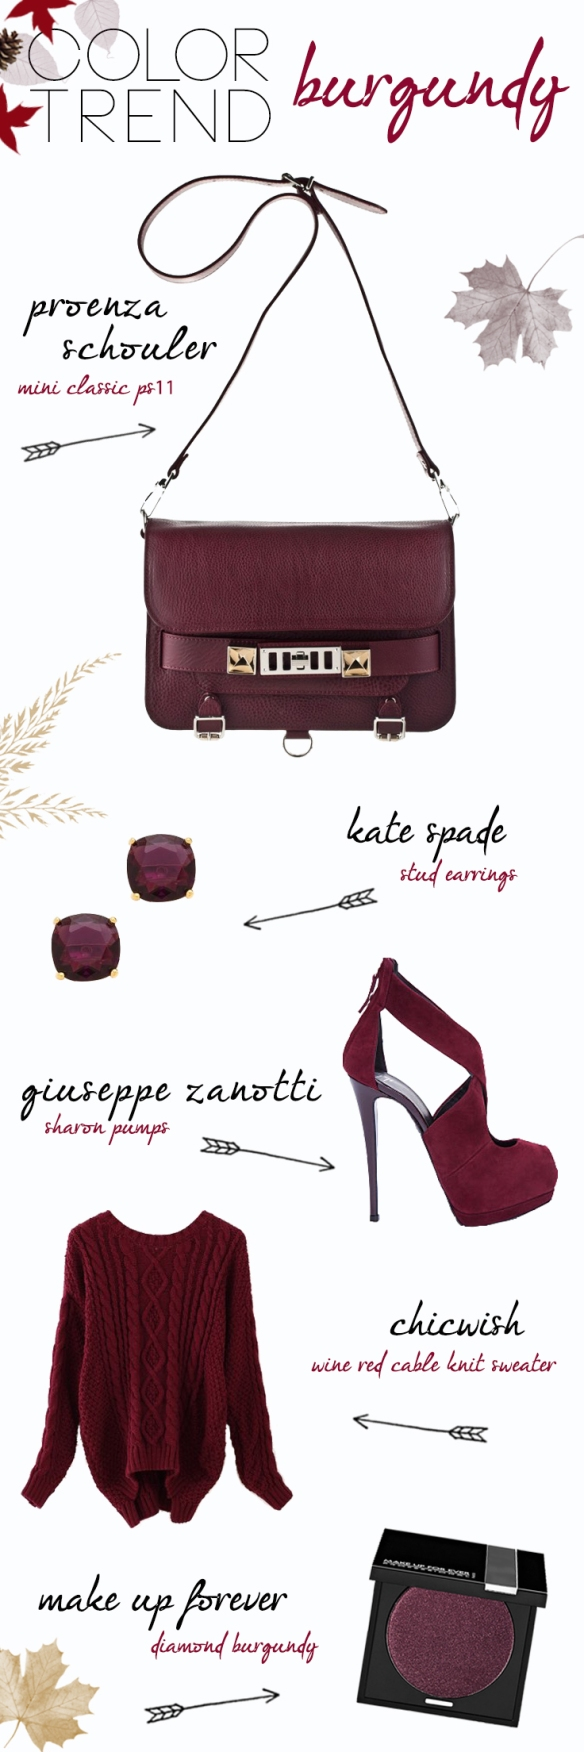 Color Trend - Burgundy